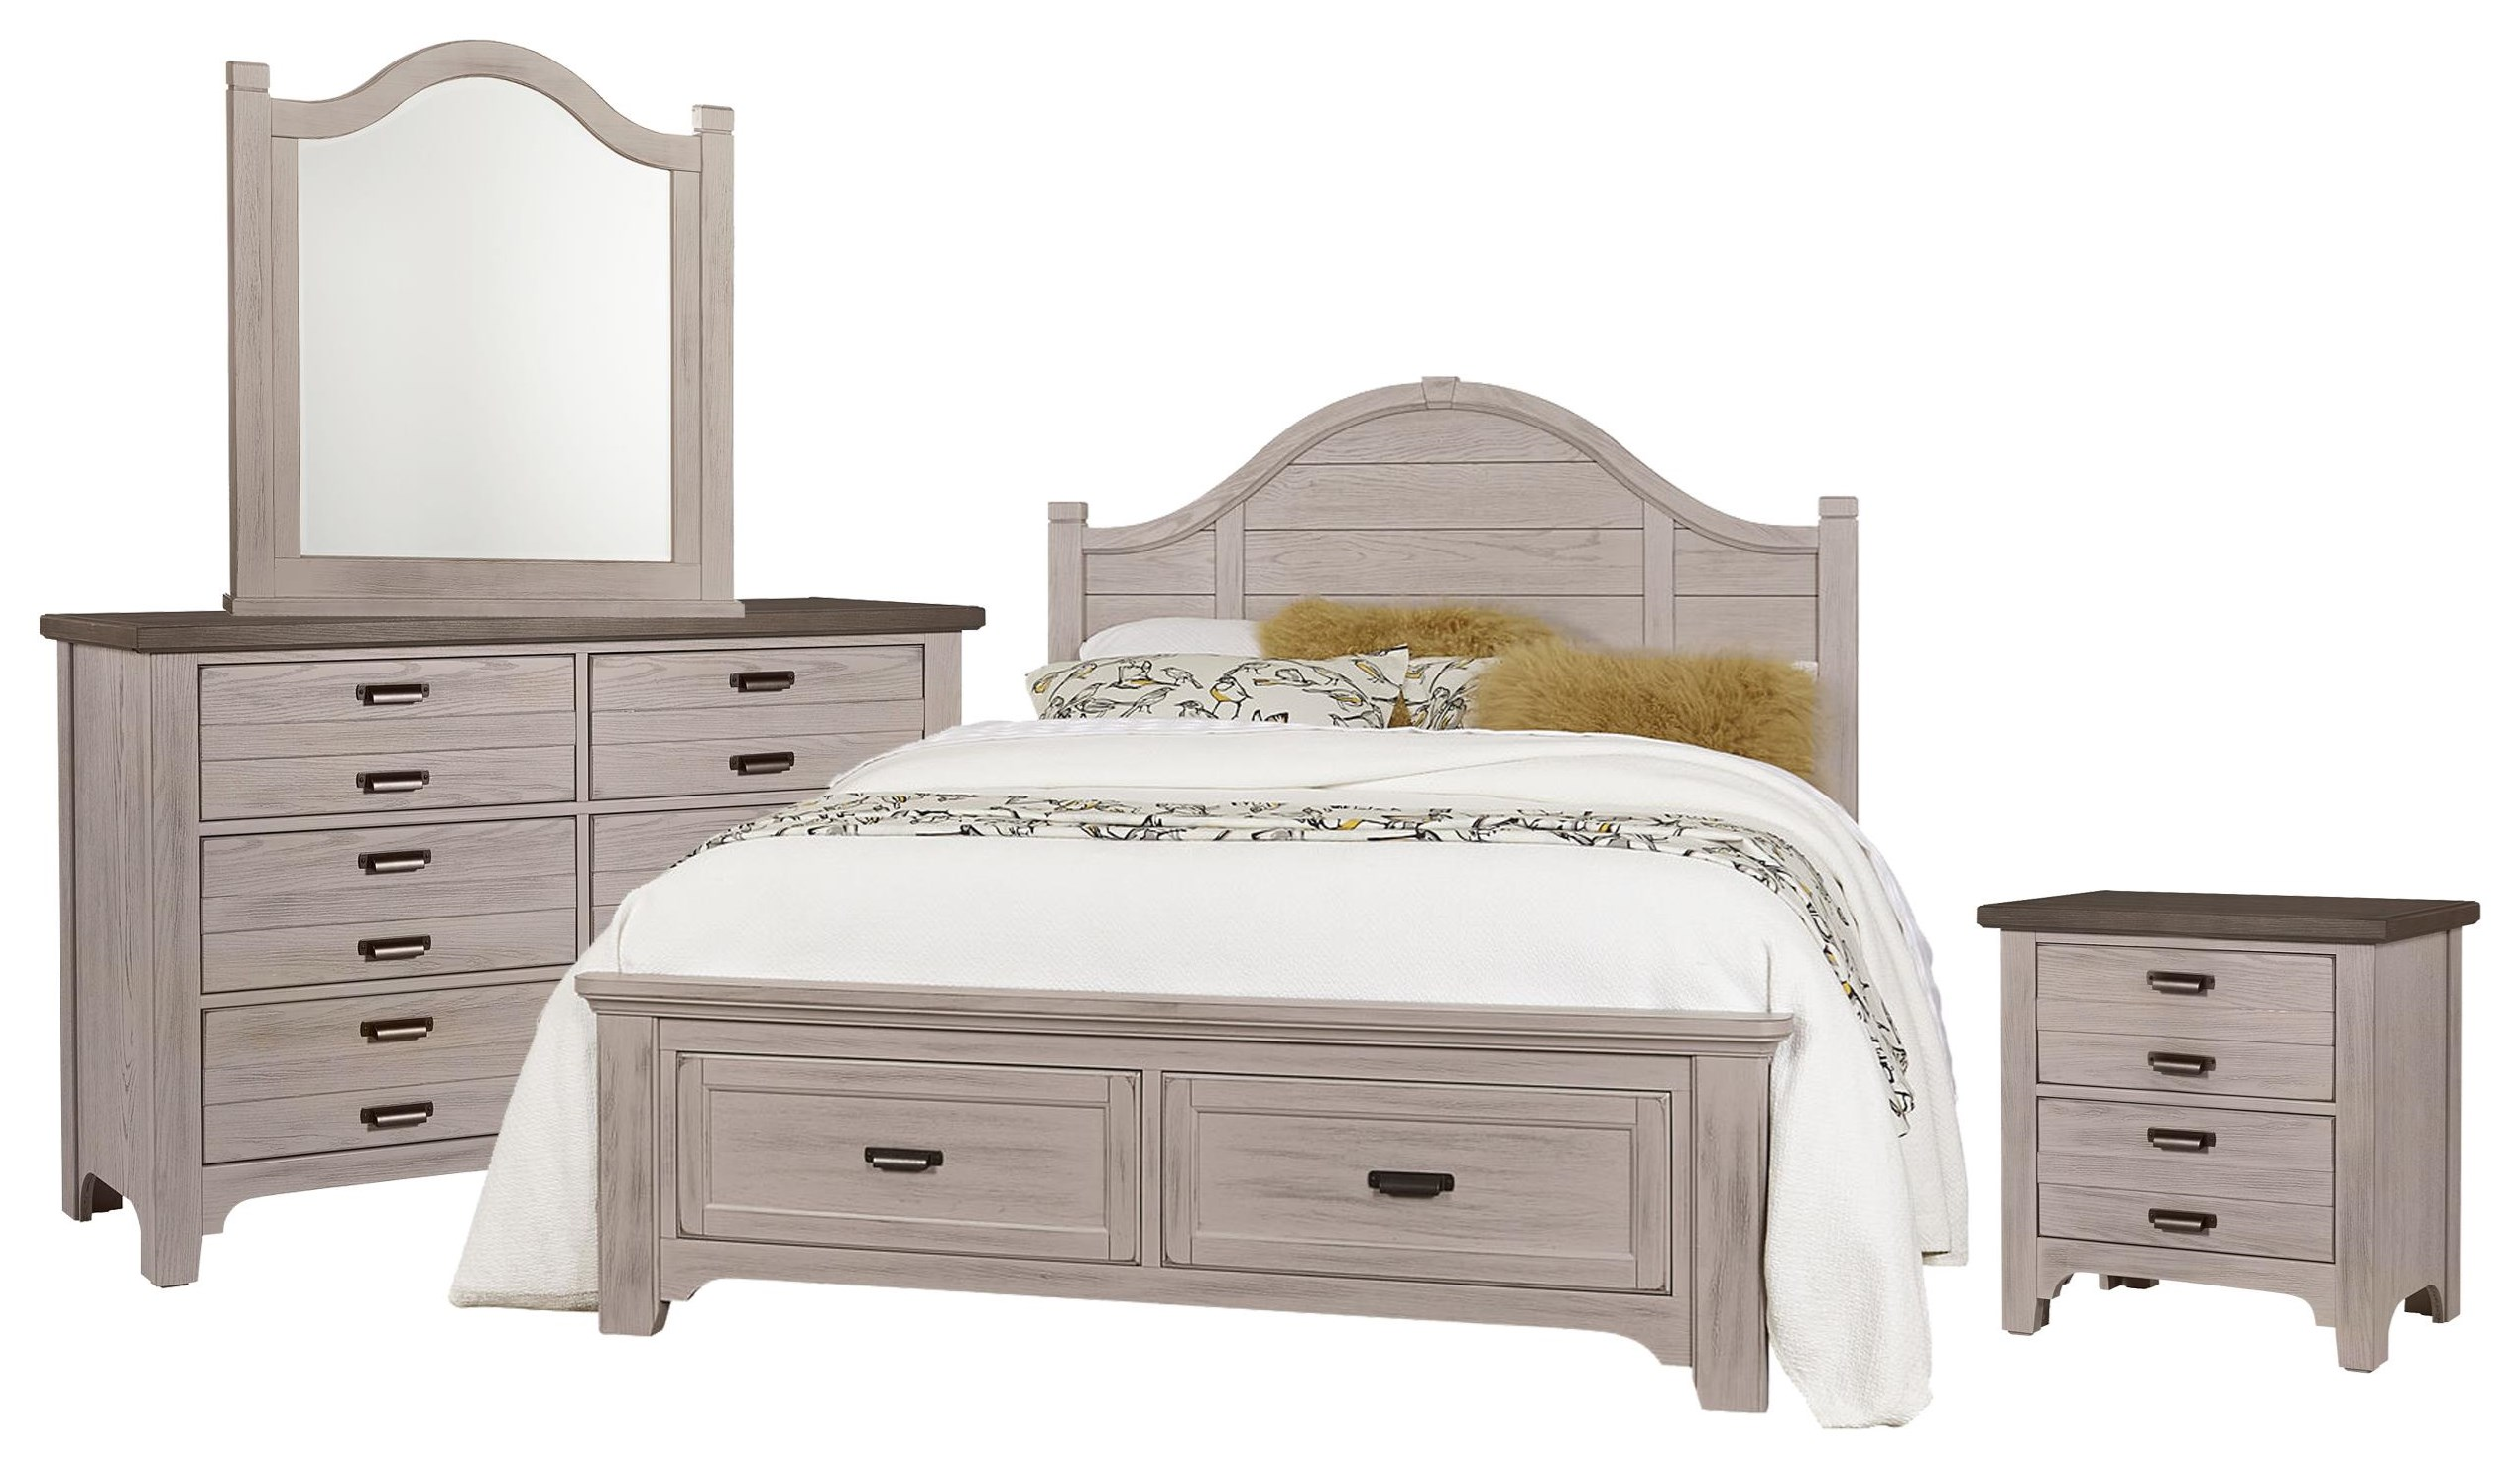 Bungalo Home Queen Arch, Dresser, Mirror, Nightst by Vaughan Bassett at Johnny Janosik